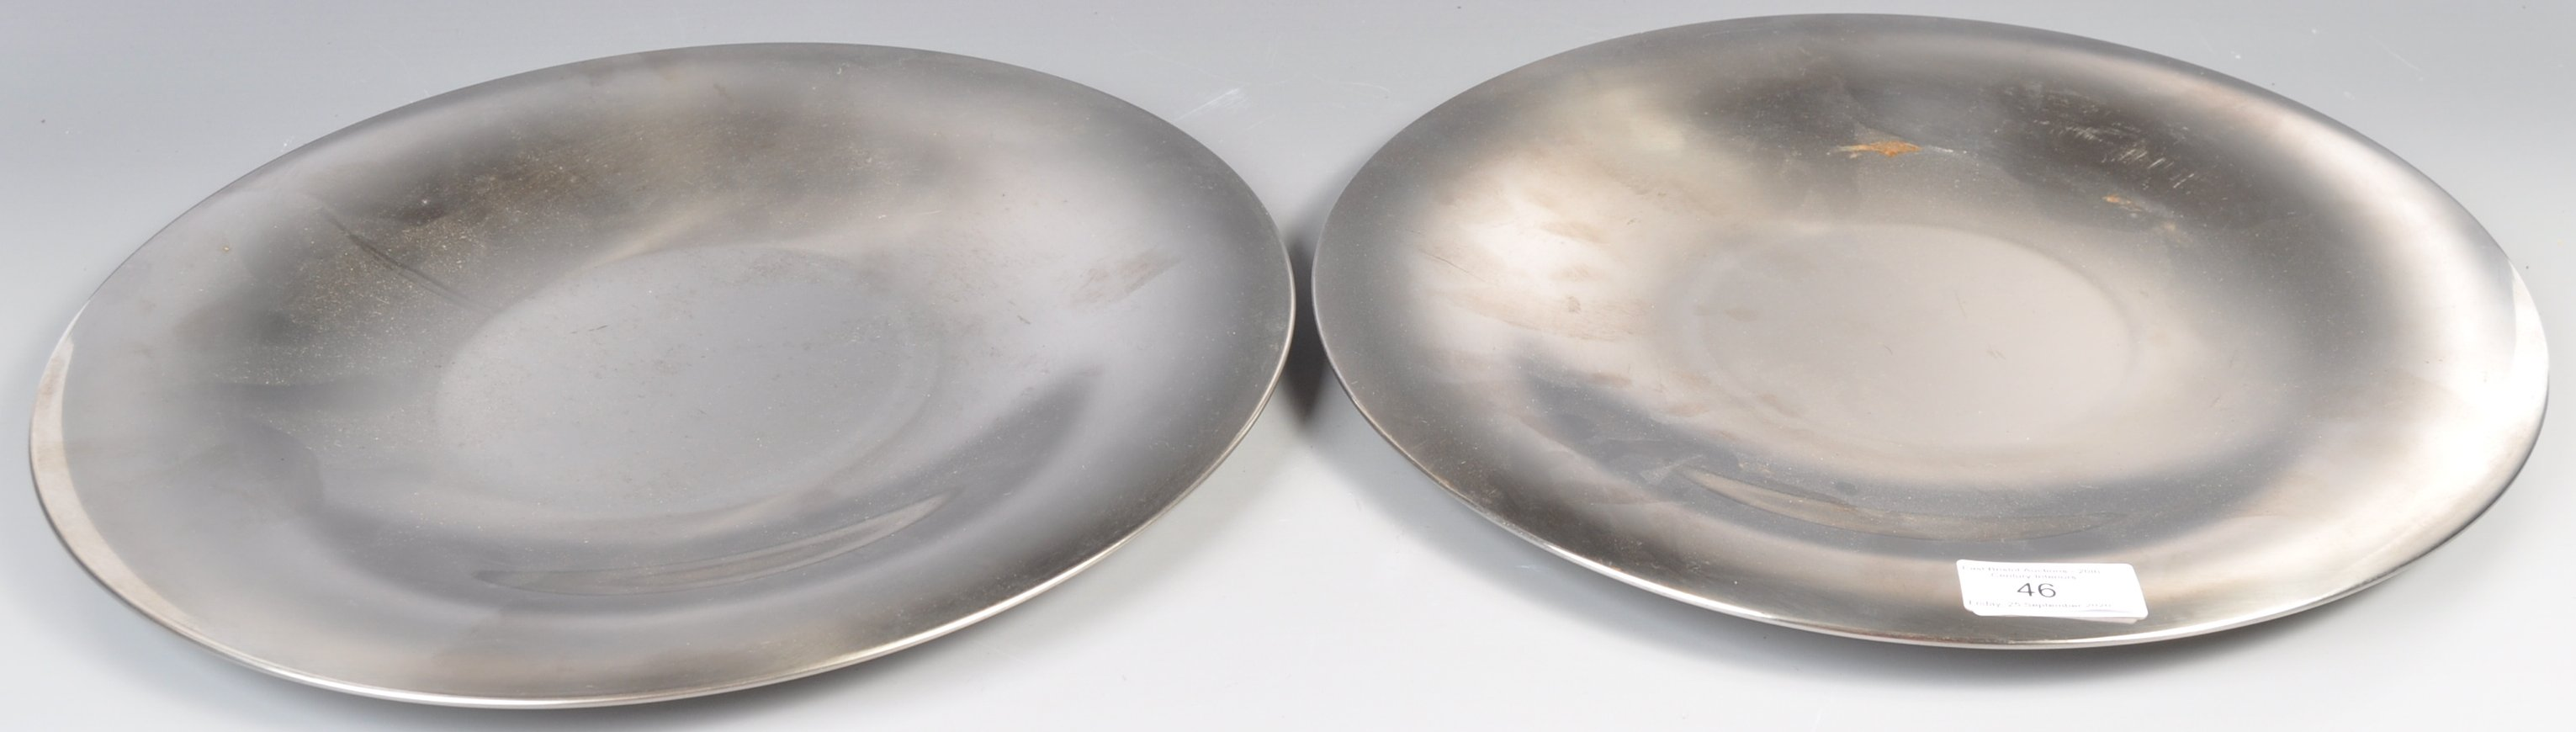 PAIR OF DANISH STAINLESS STEEL PLATES BY LONE SACHS FOR LUNDTOFTE